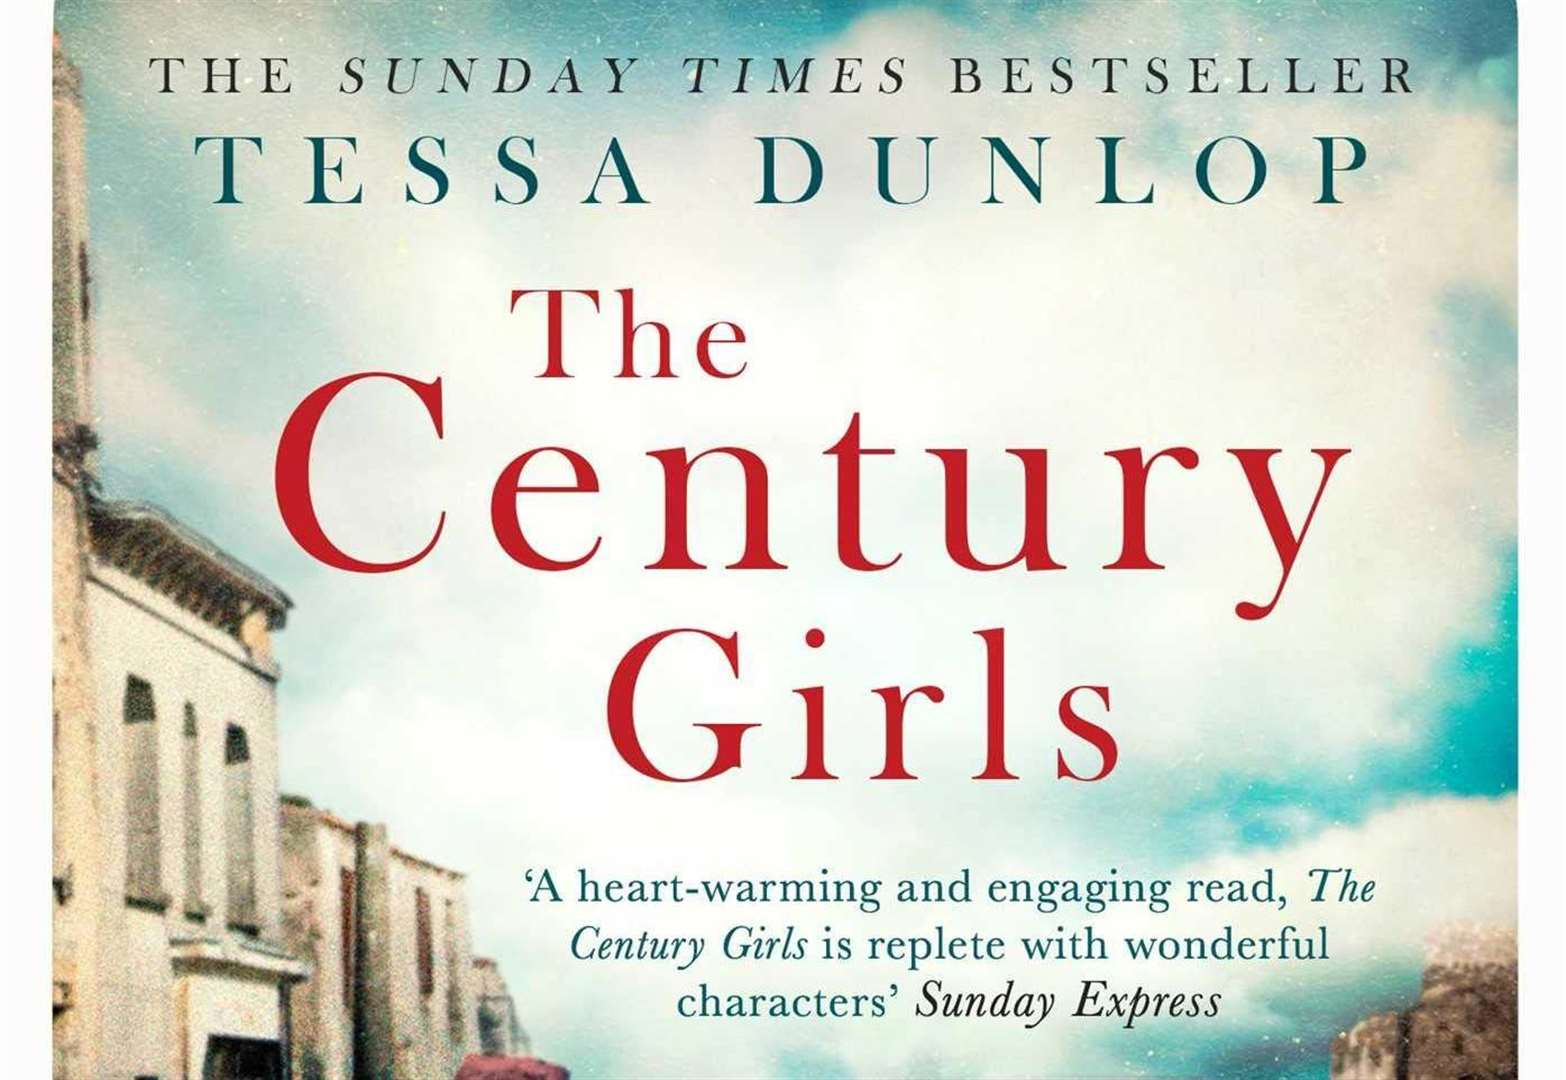 BOOK OF THE WEEK: The Century Girls by Tessa Dunlop